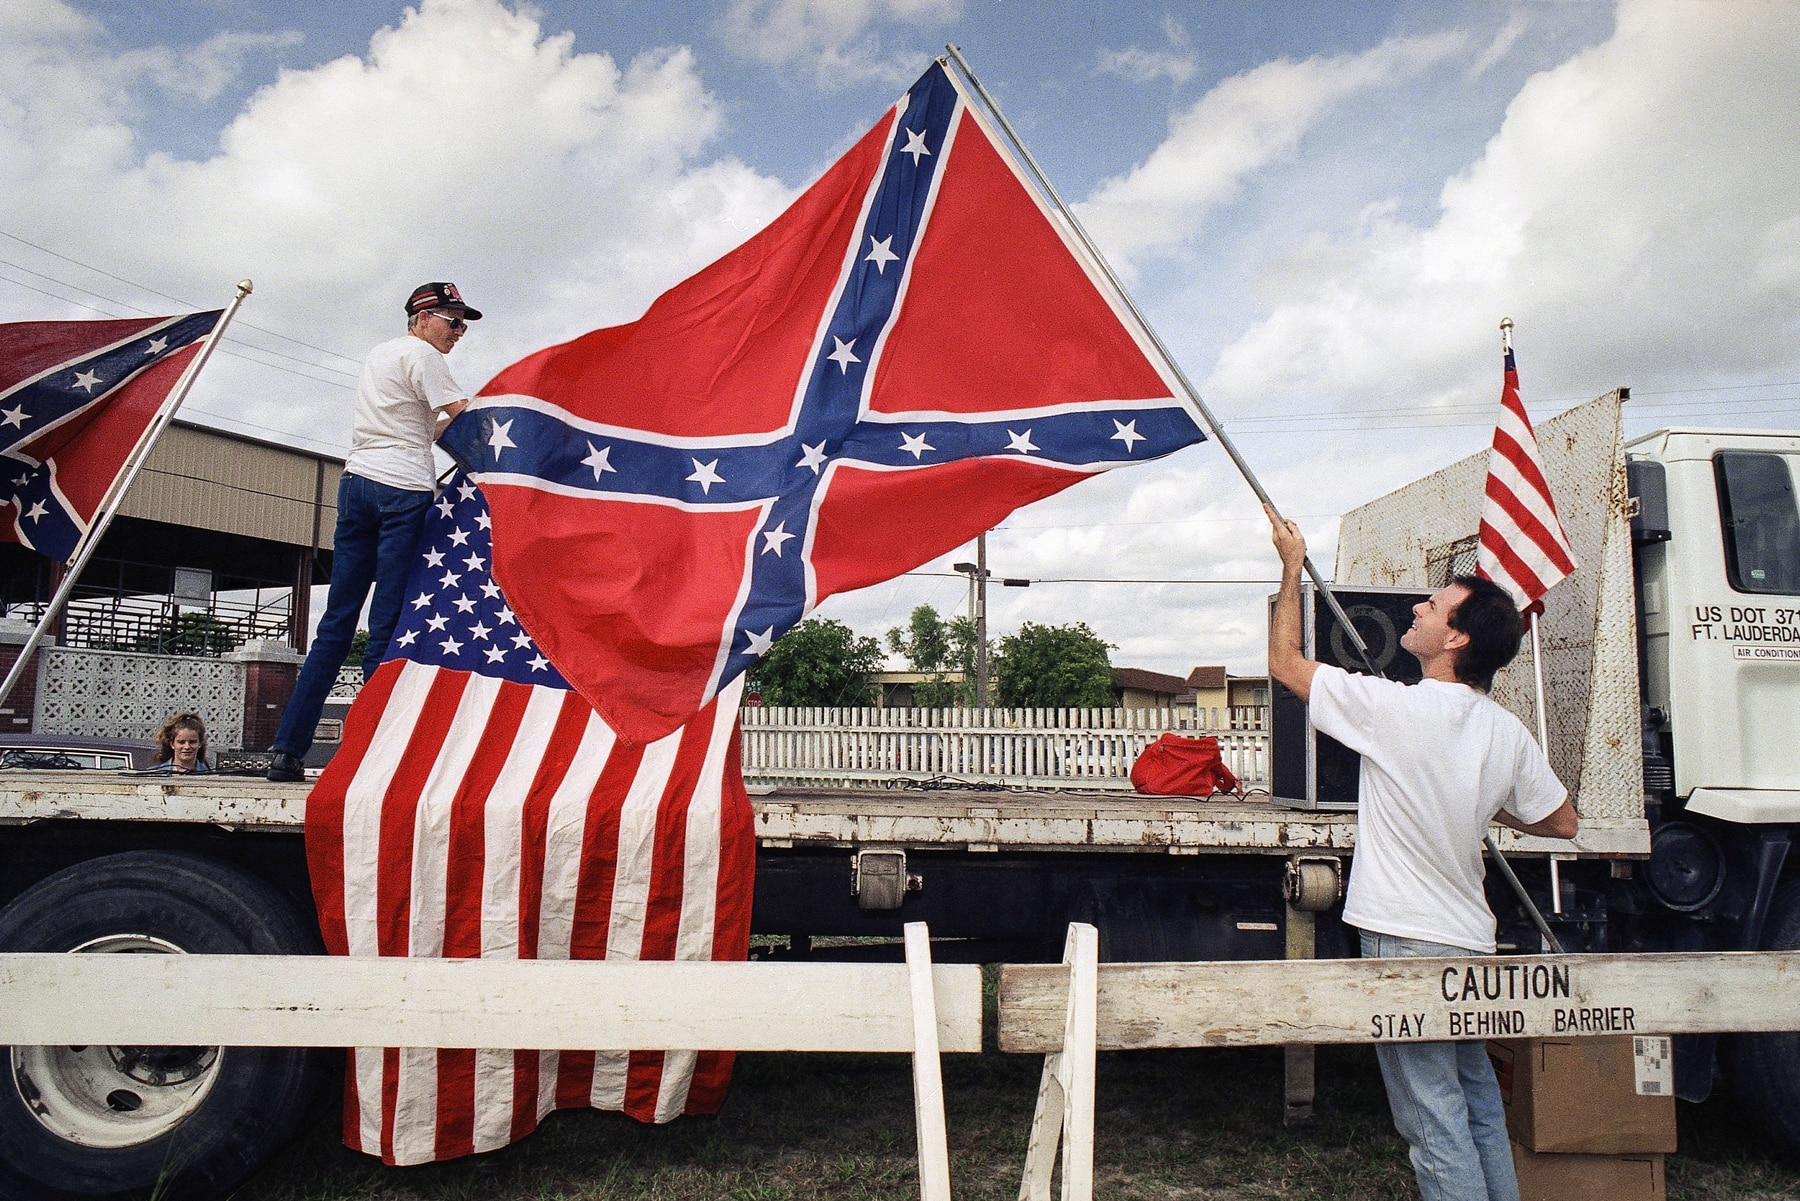 People setting up a stage and arranging flags (© AP Images/Kathy Willens)